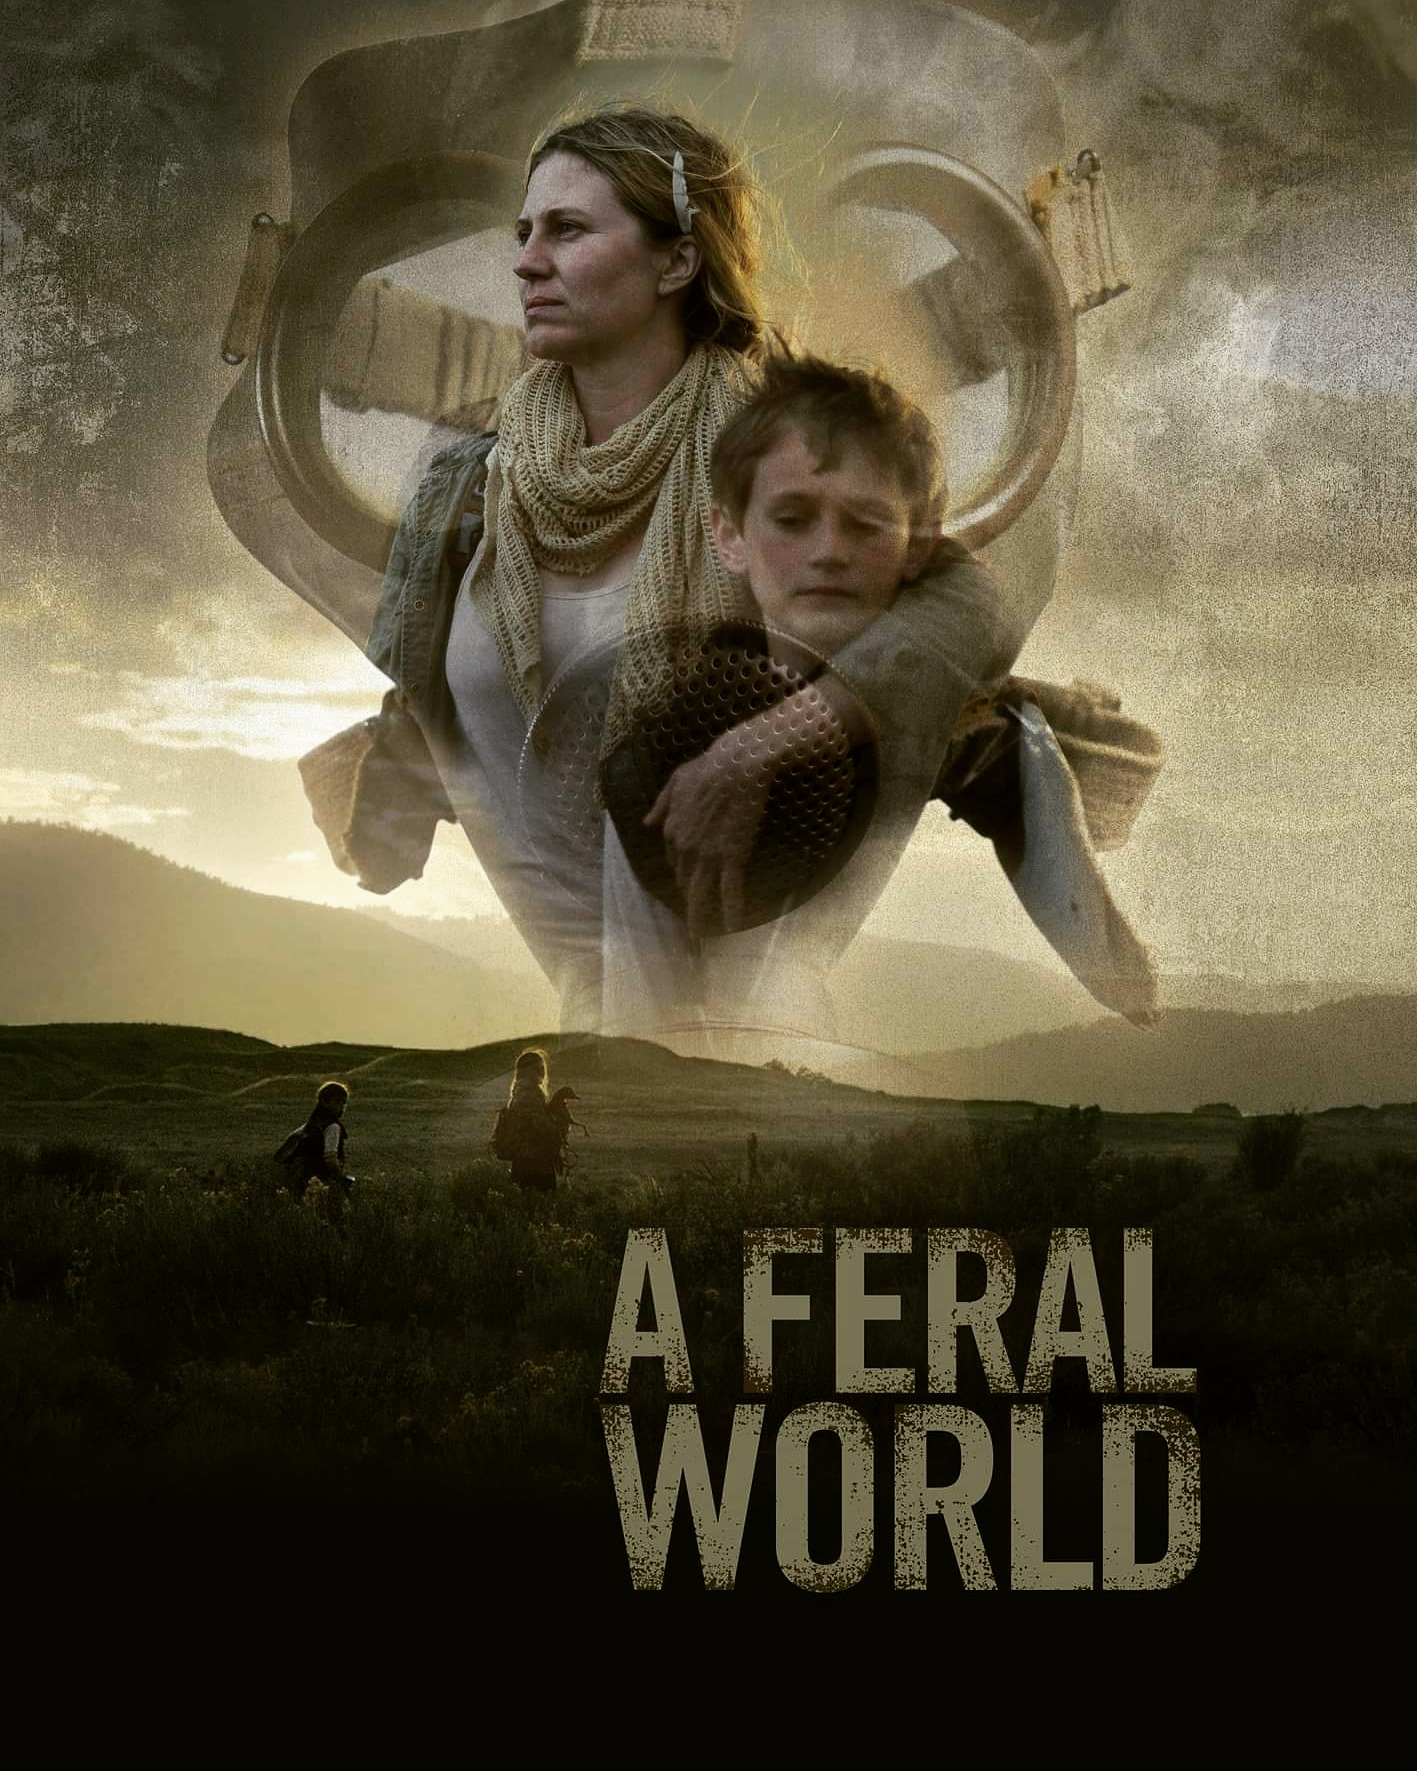 A Feral World (2020) Hindi (Voice Over) Dubbed+ English [Dual Audio] WebRip 720p [1XBET]